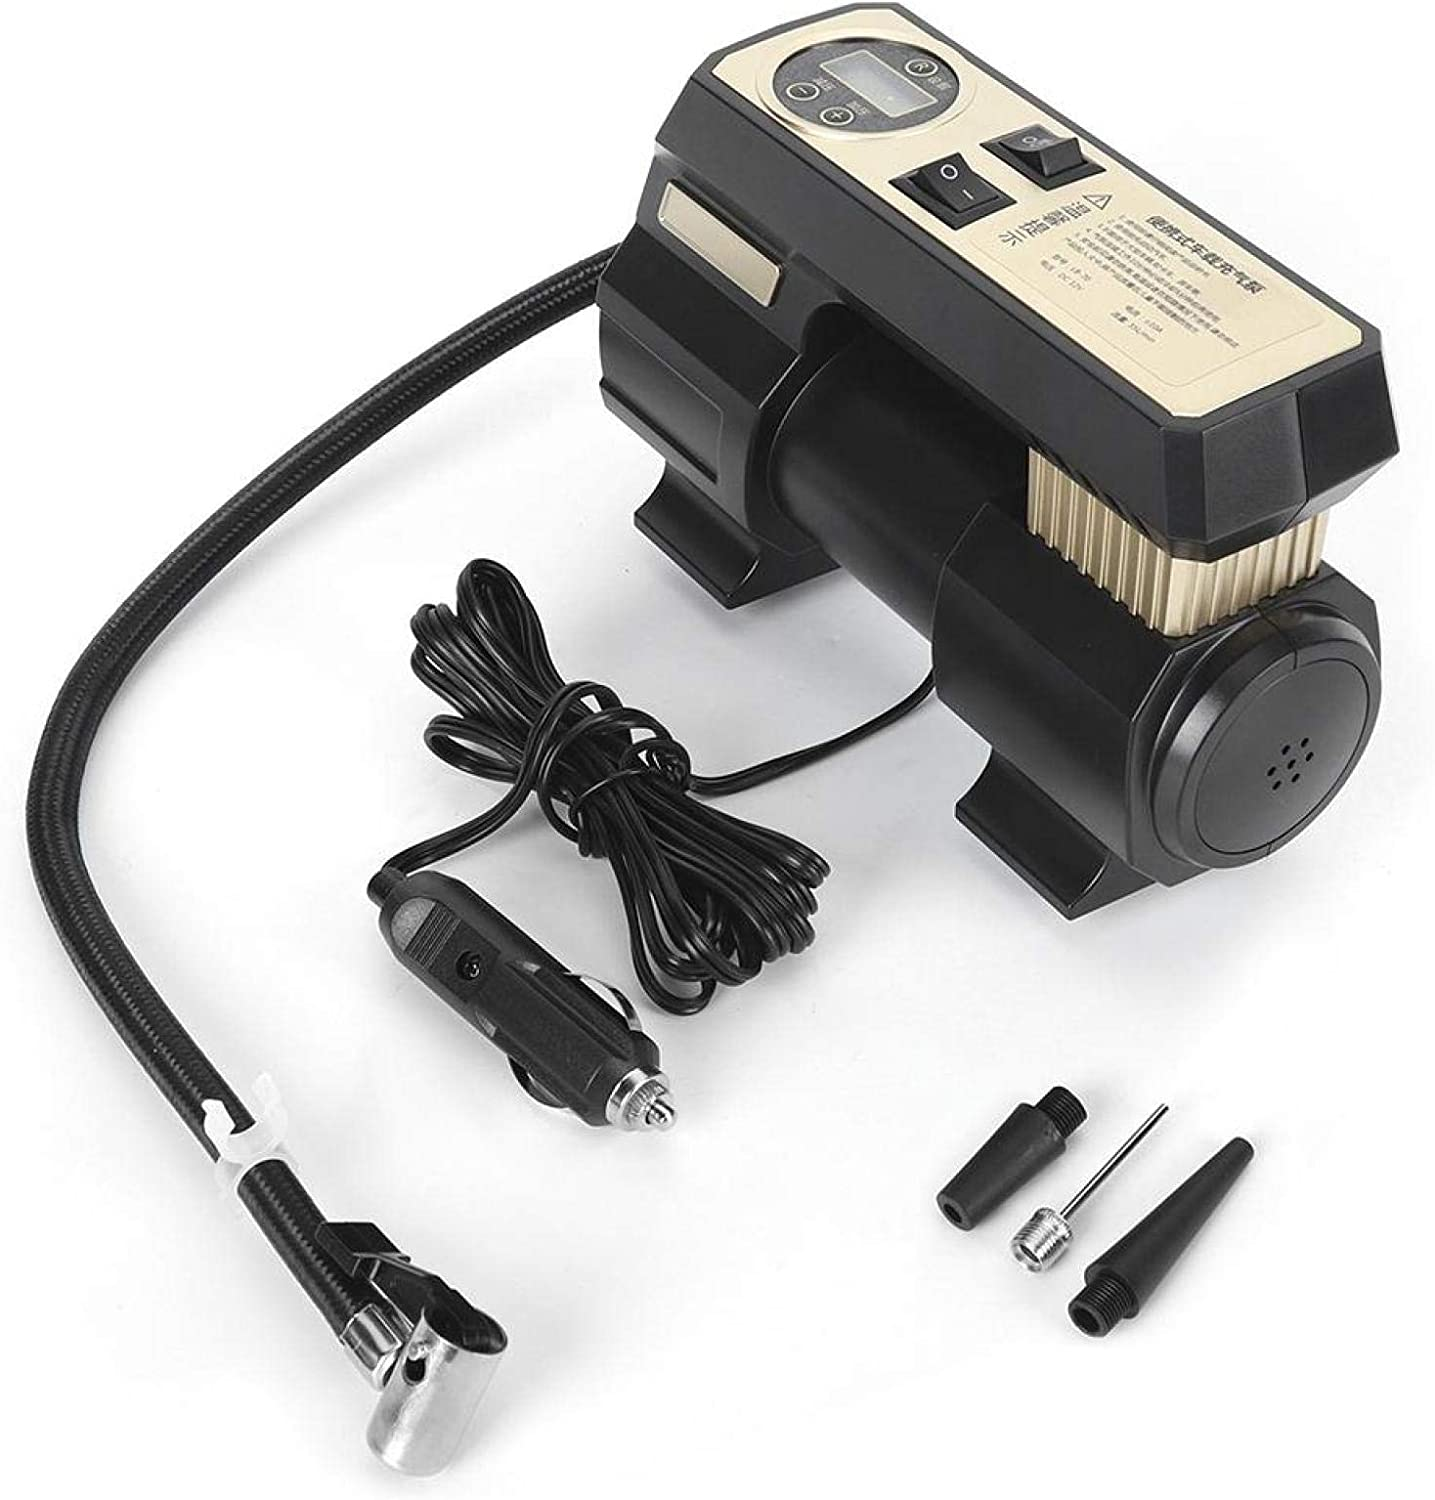 Akozon Car Inflatable Pump Portable Max 84% OFF 12V Digital Multi-Functional In a popularity